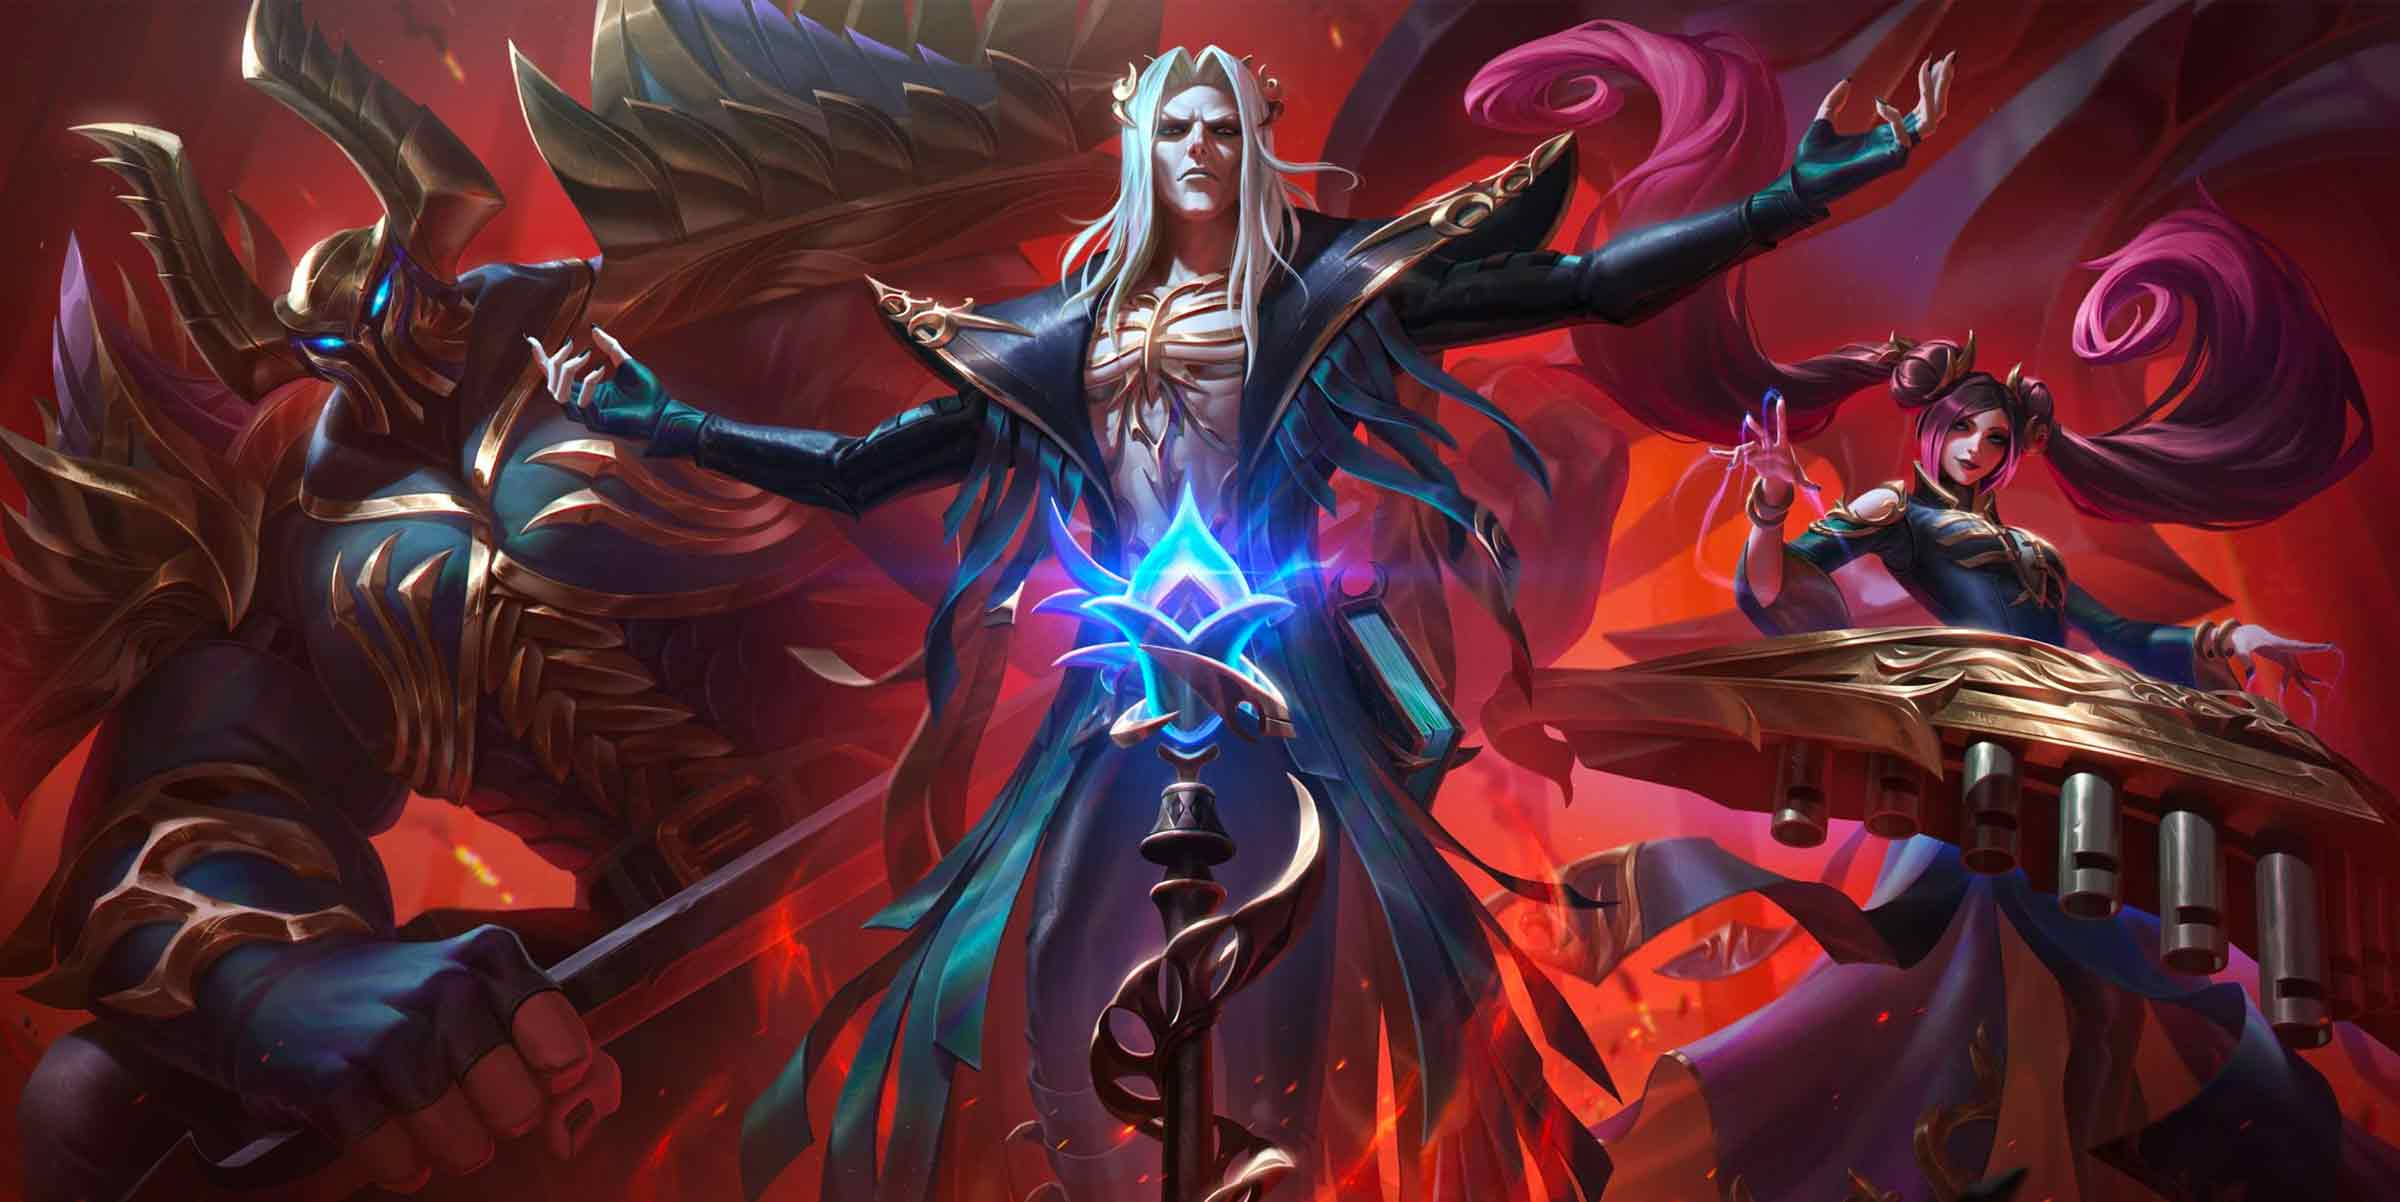 Illustration by Riot Games